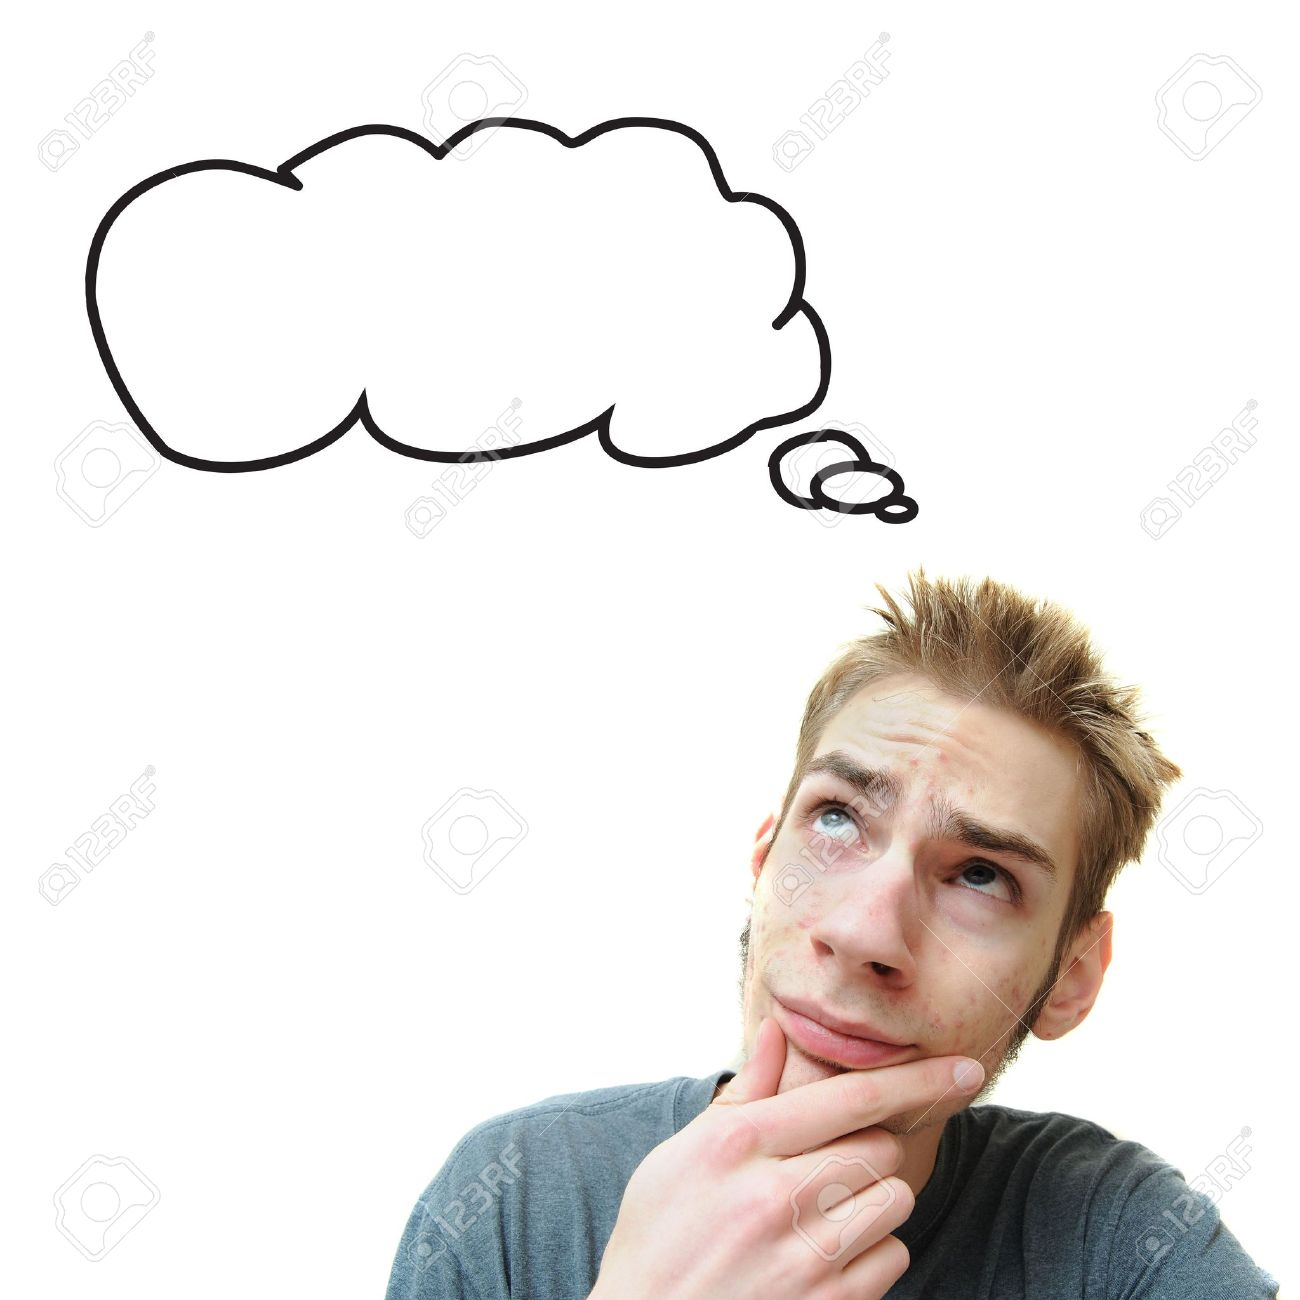 A young white male adult thinks in his think bubble caption. Isolated on white background. Stock Photo - 6500872